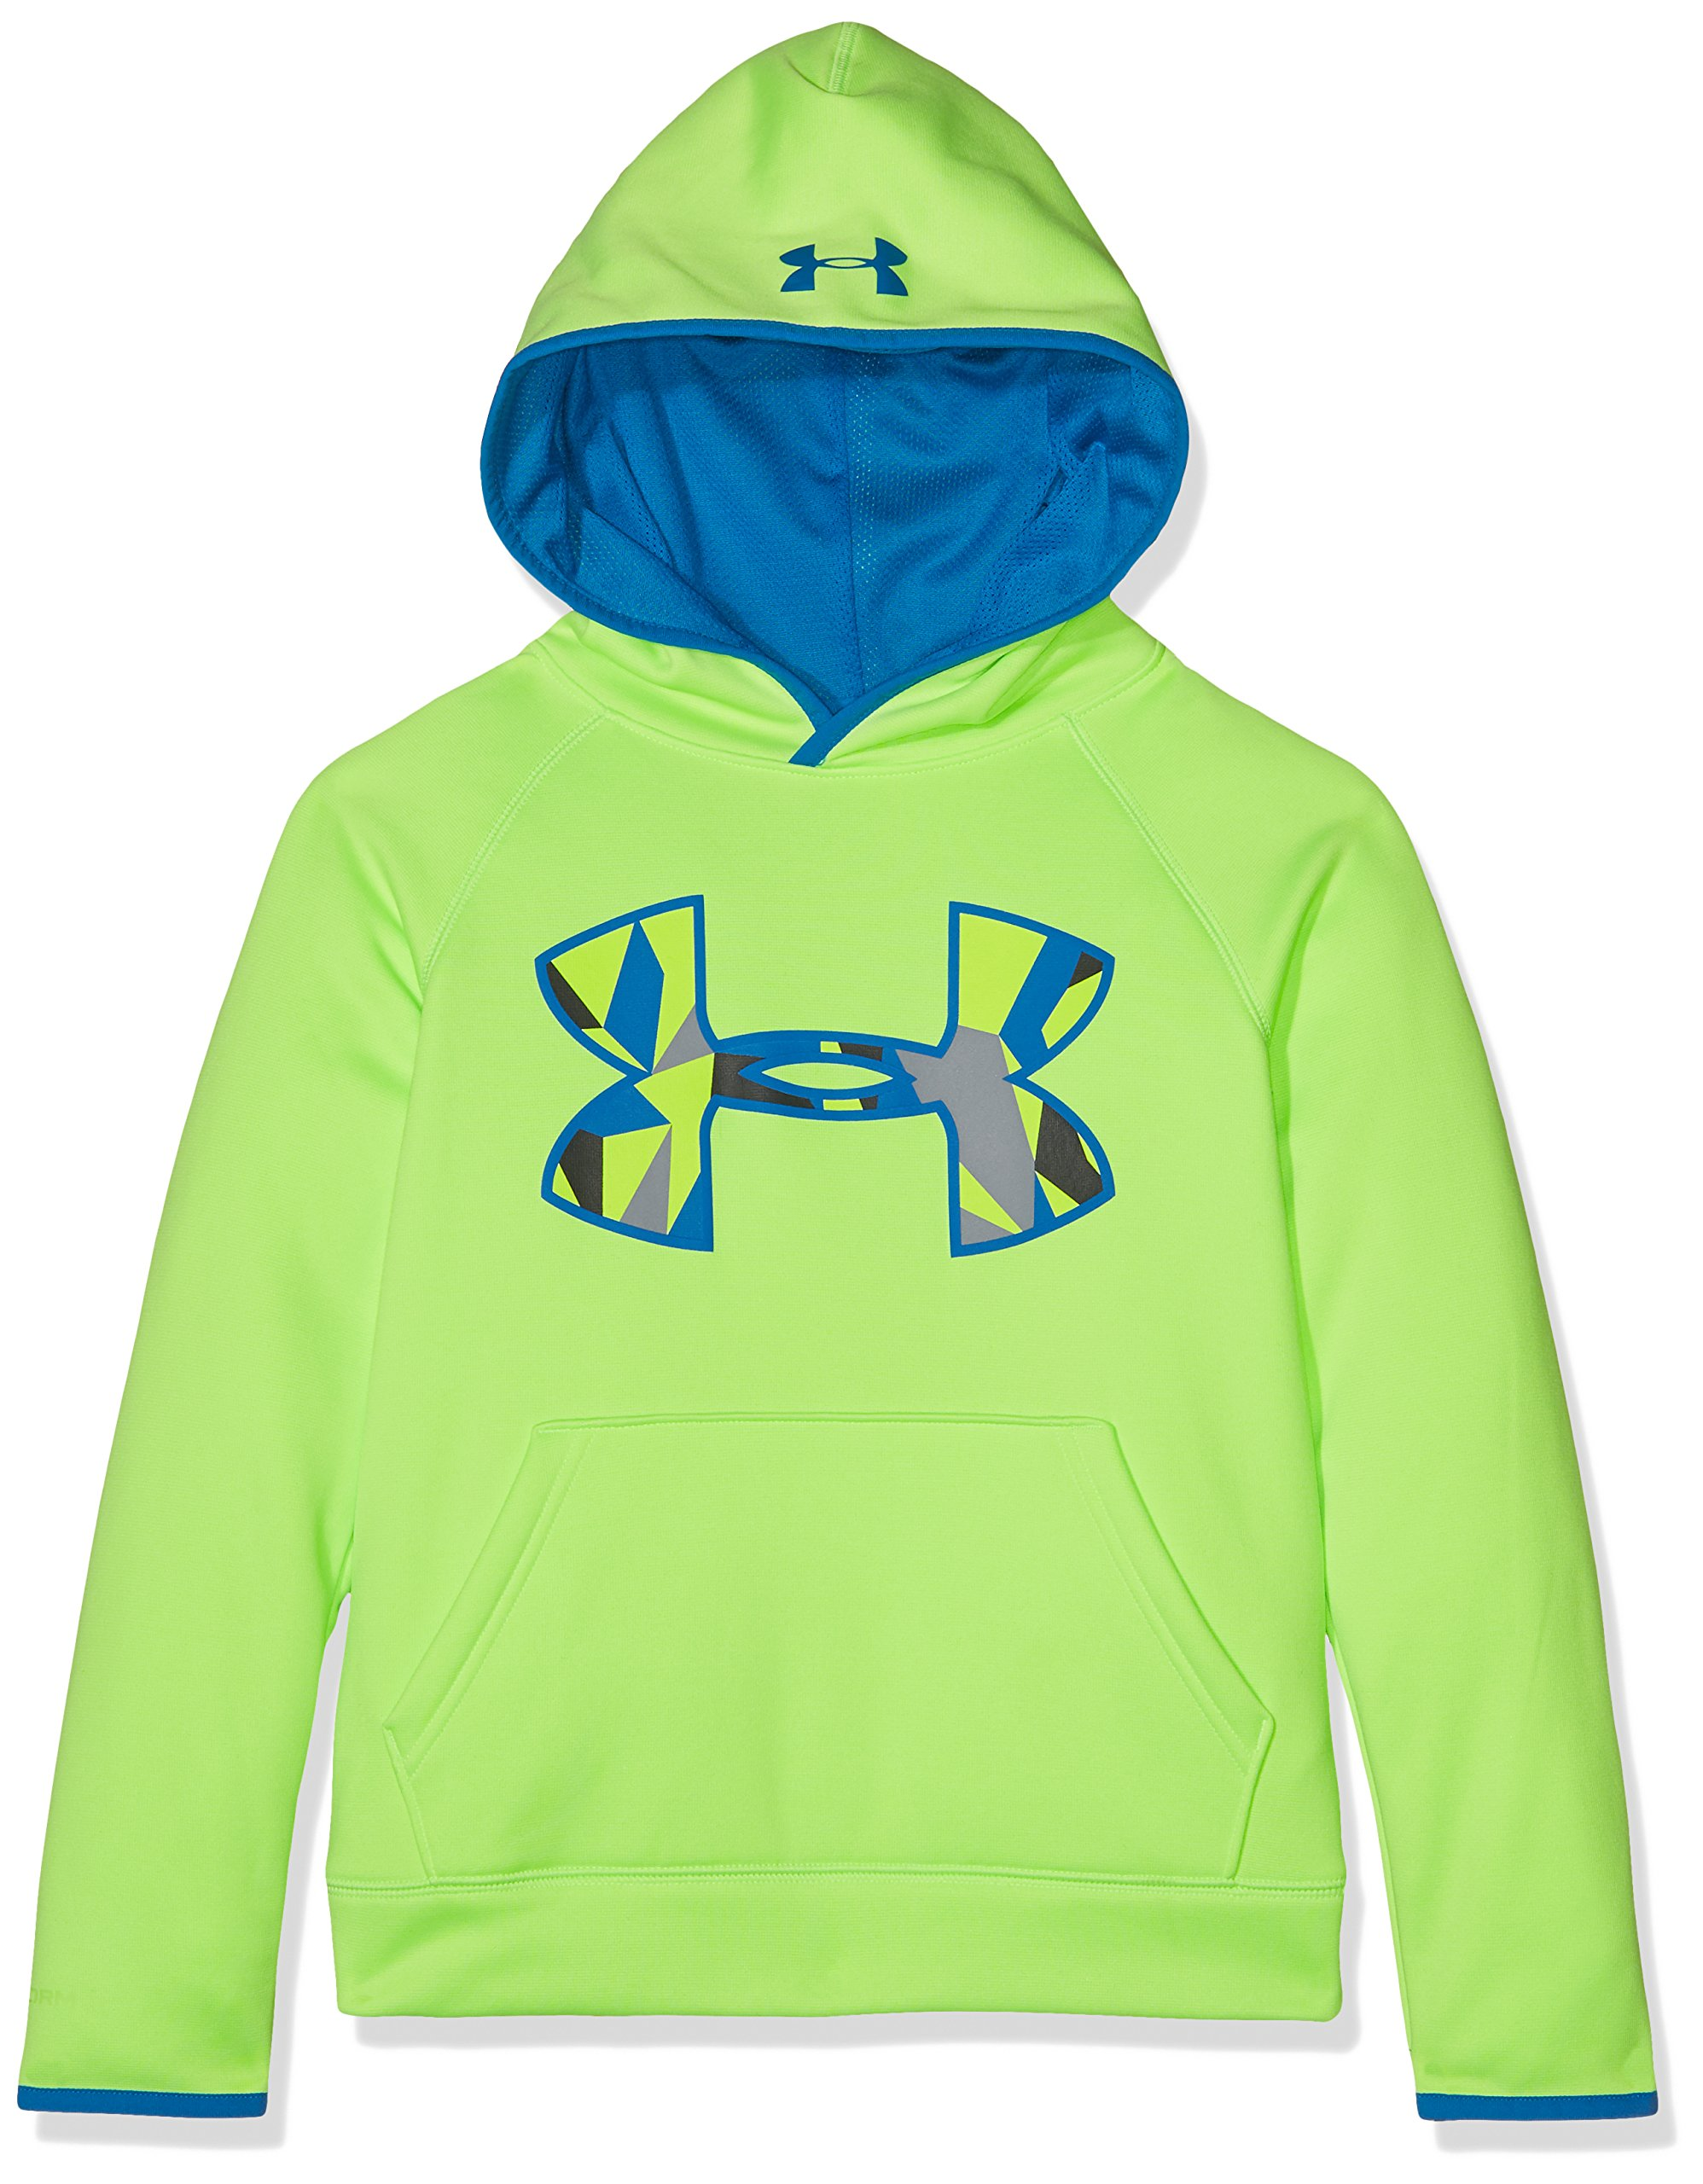 Under Armour Boys' Armour Fleece Big Logo Hoodie,Quirky Lime (753)/Cruise Blue, Youth X-Small